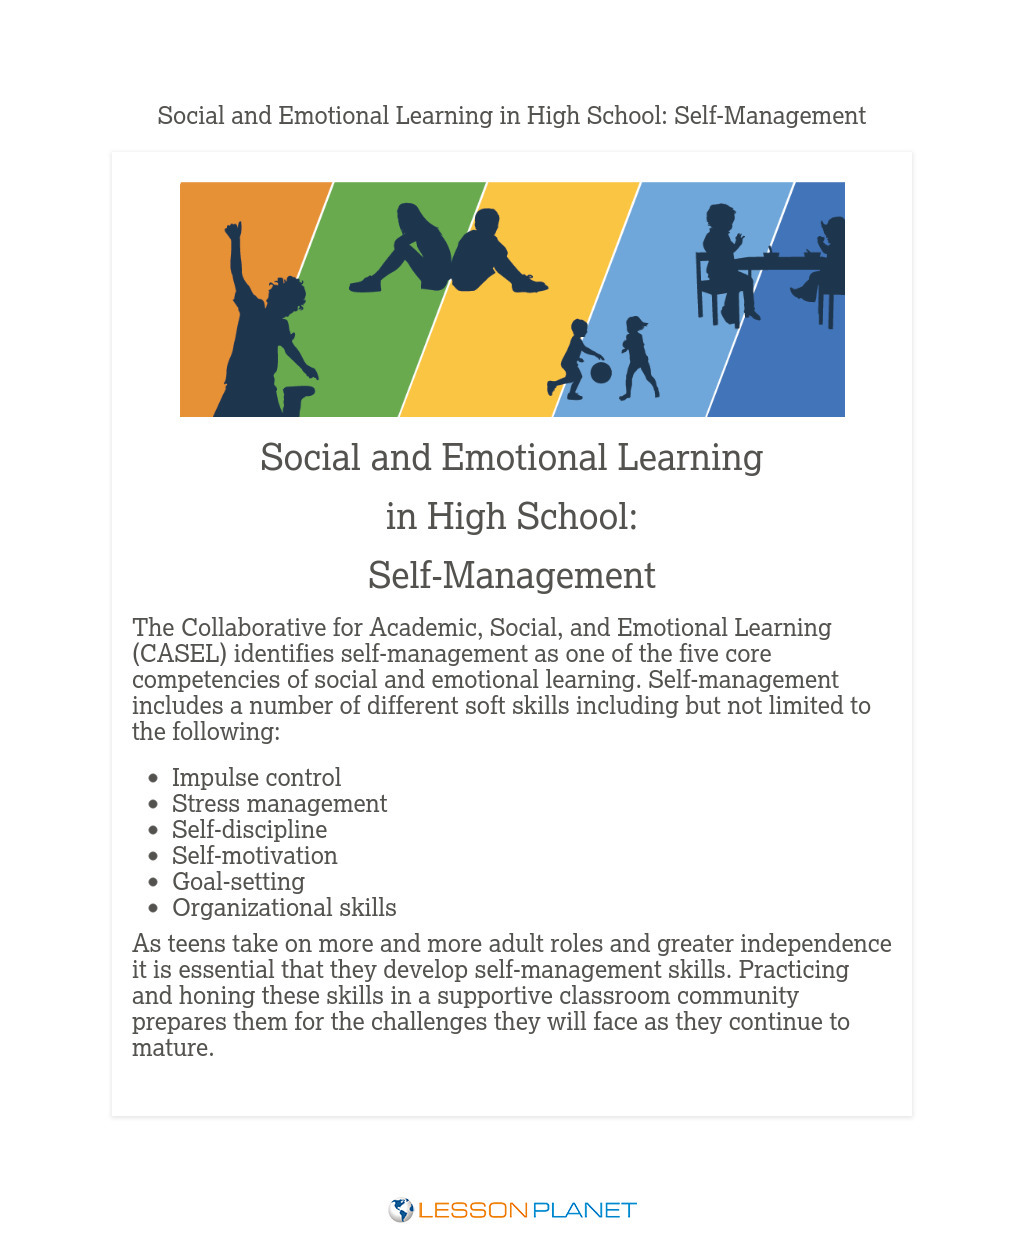 Social & Emotional Learning in High School: Self-Management